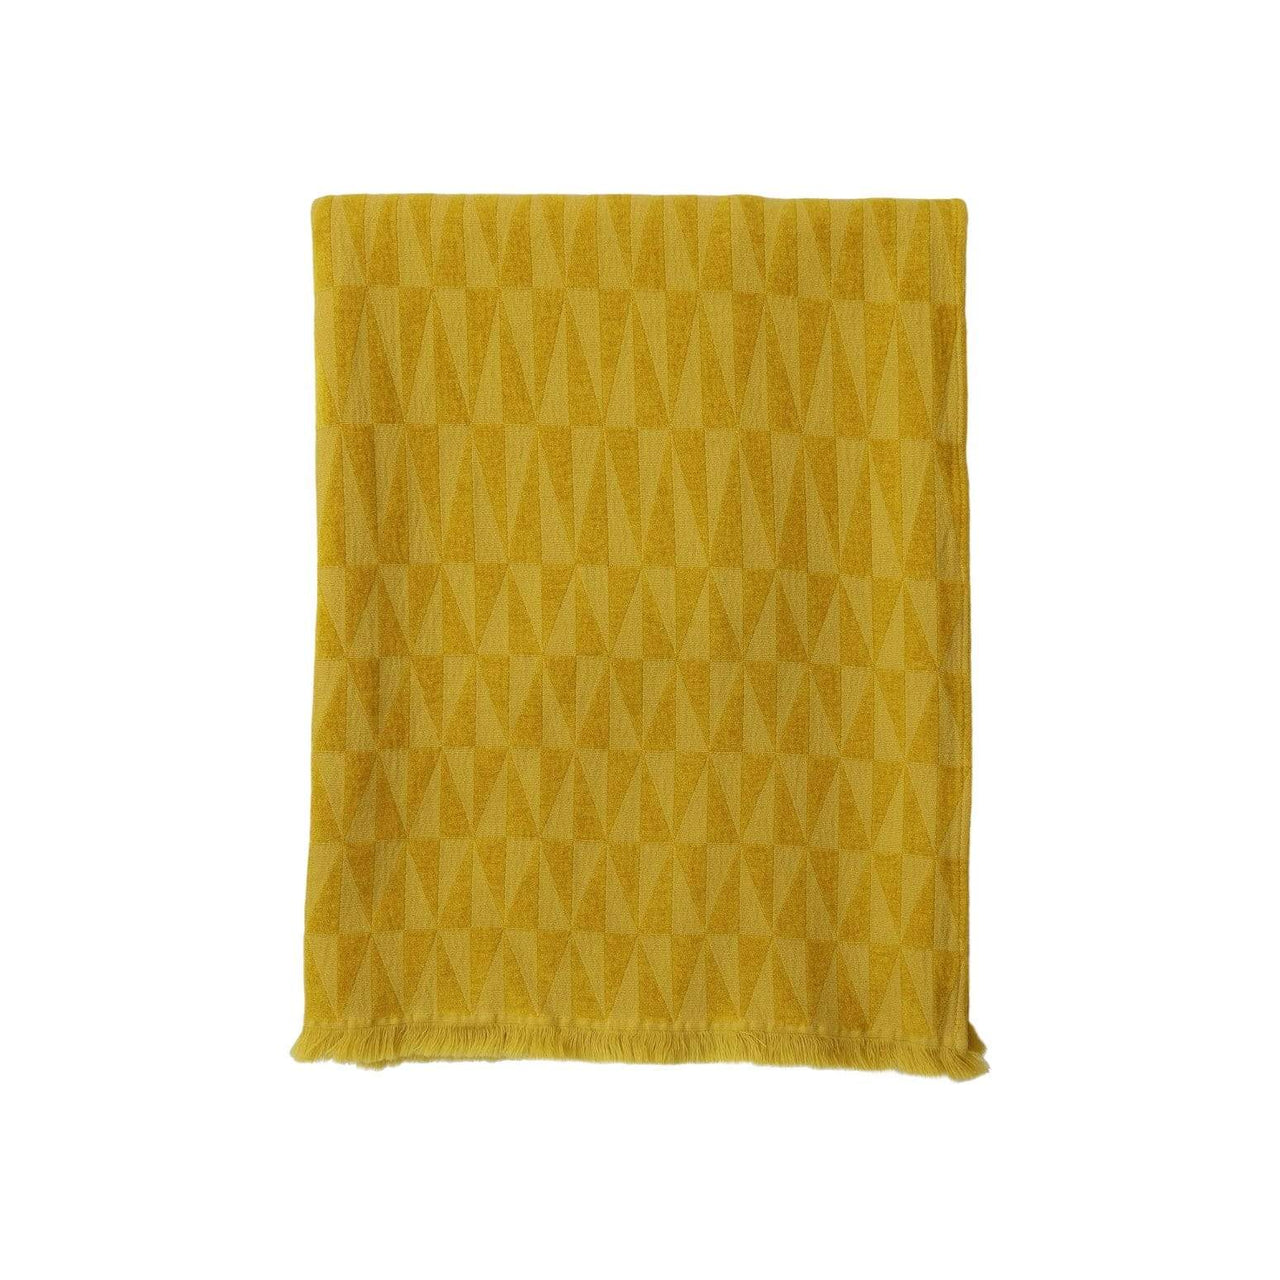 Johanna Howard Home Home Decor Goldenrod Apex Throw